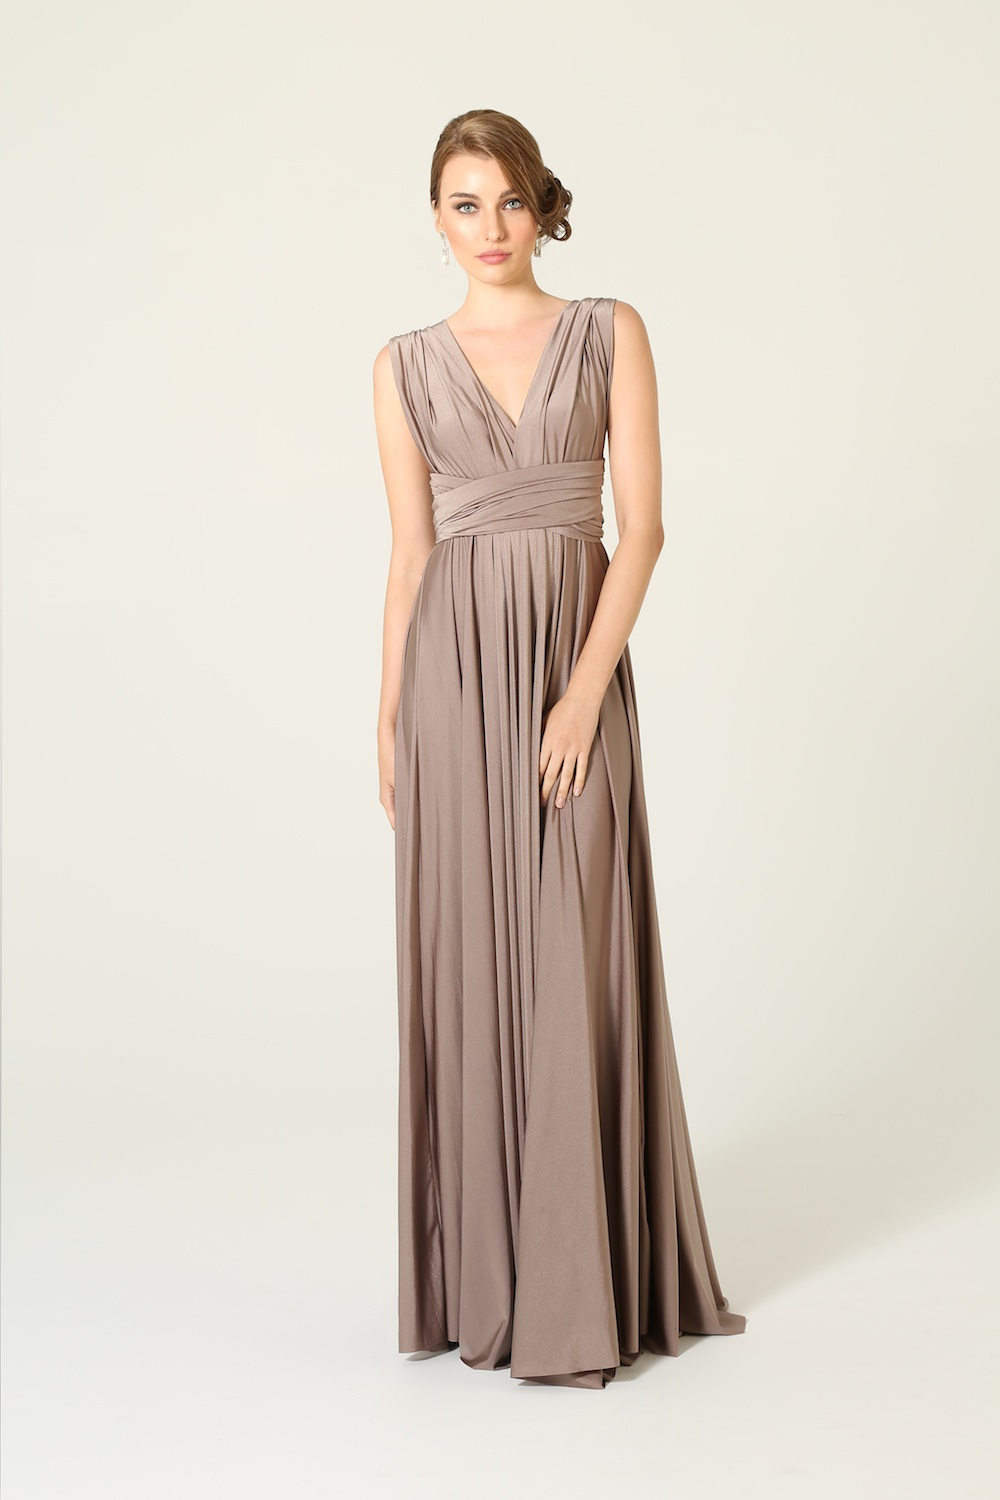 Bridesmaid Wrap Dress